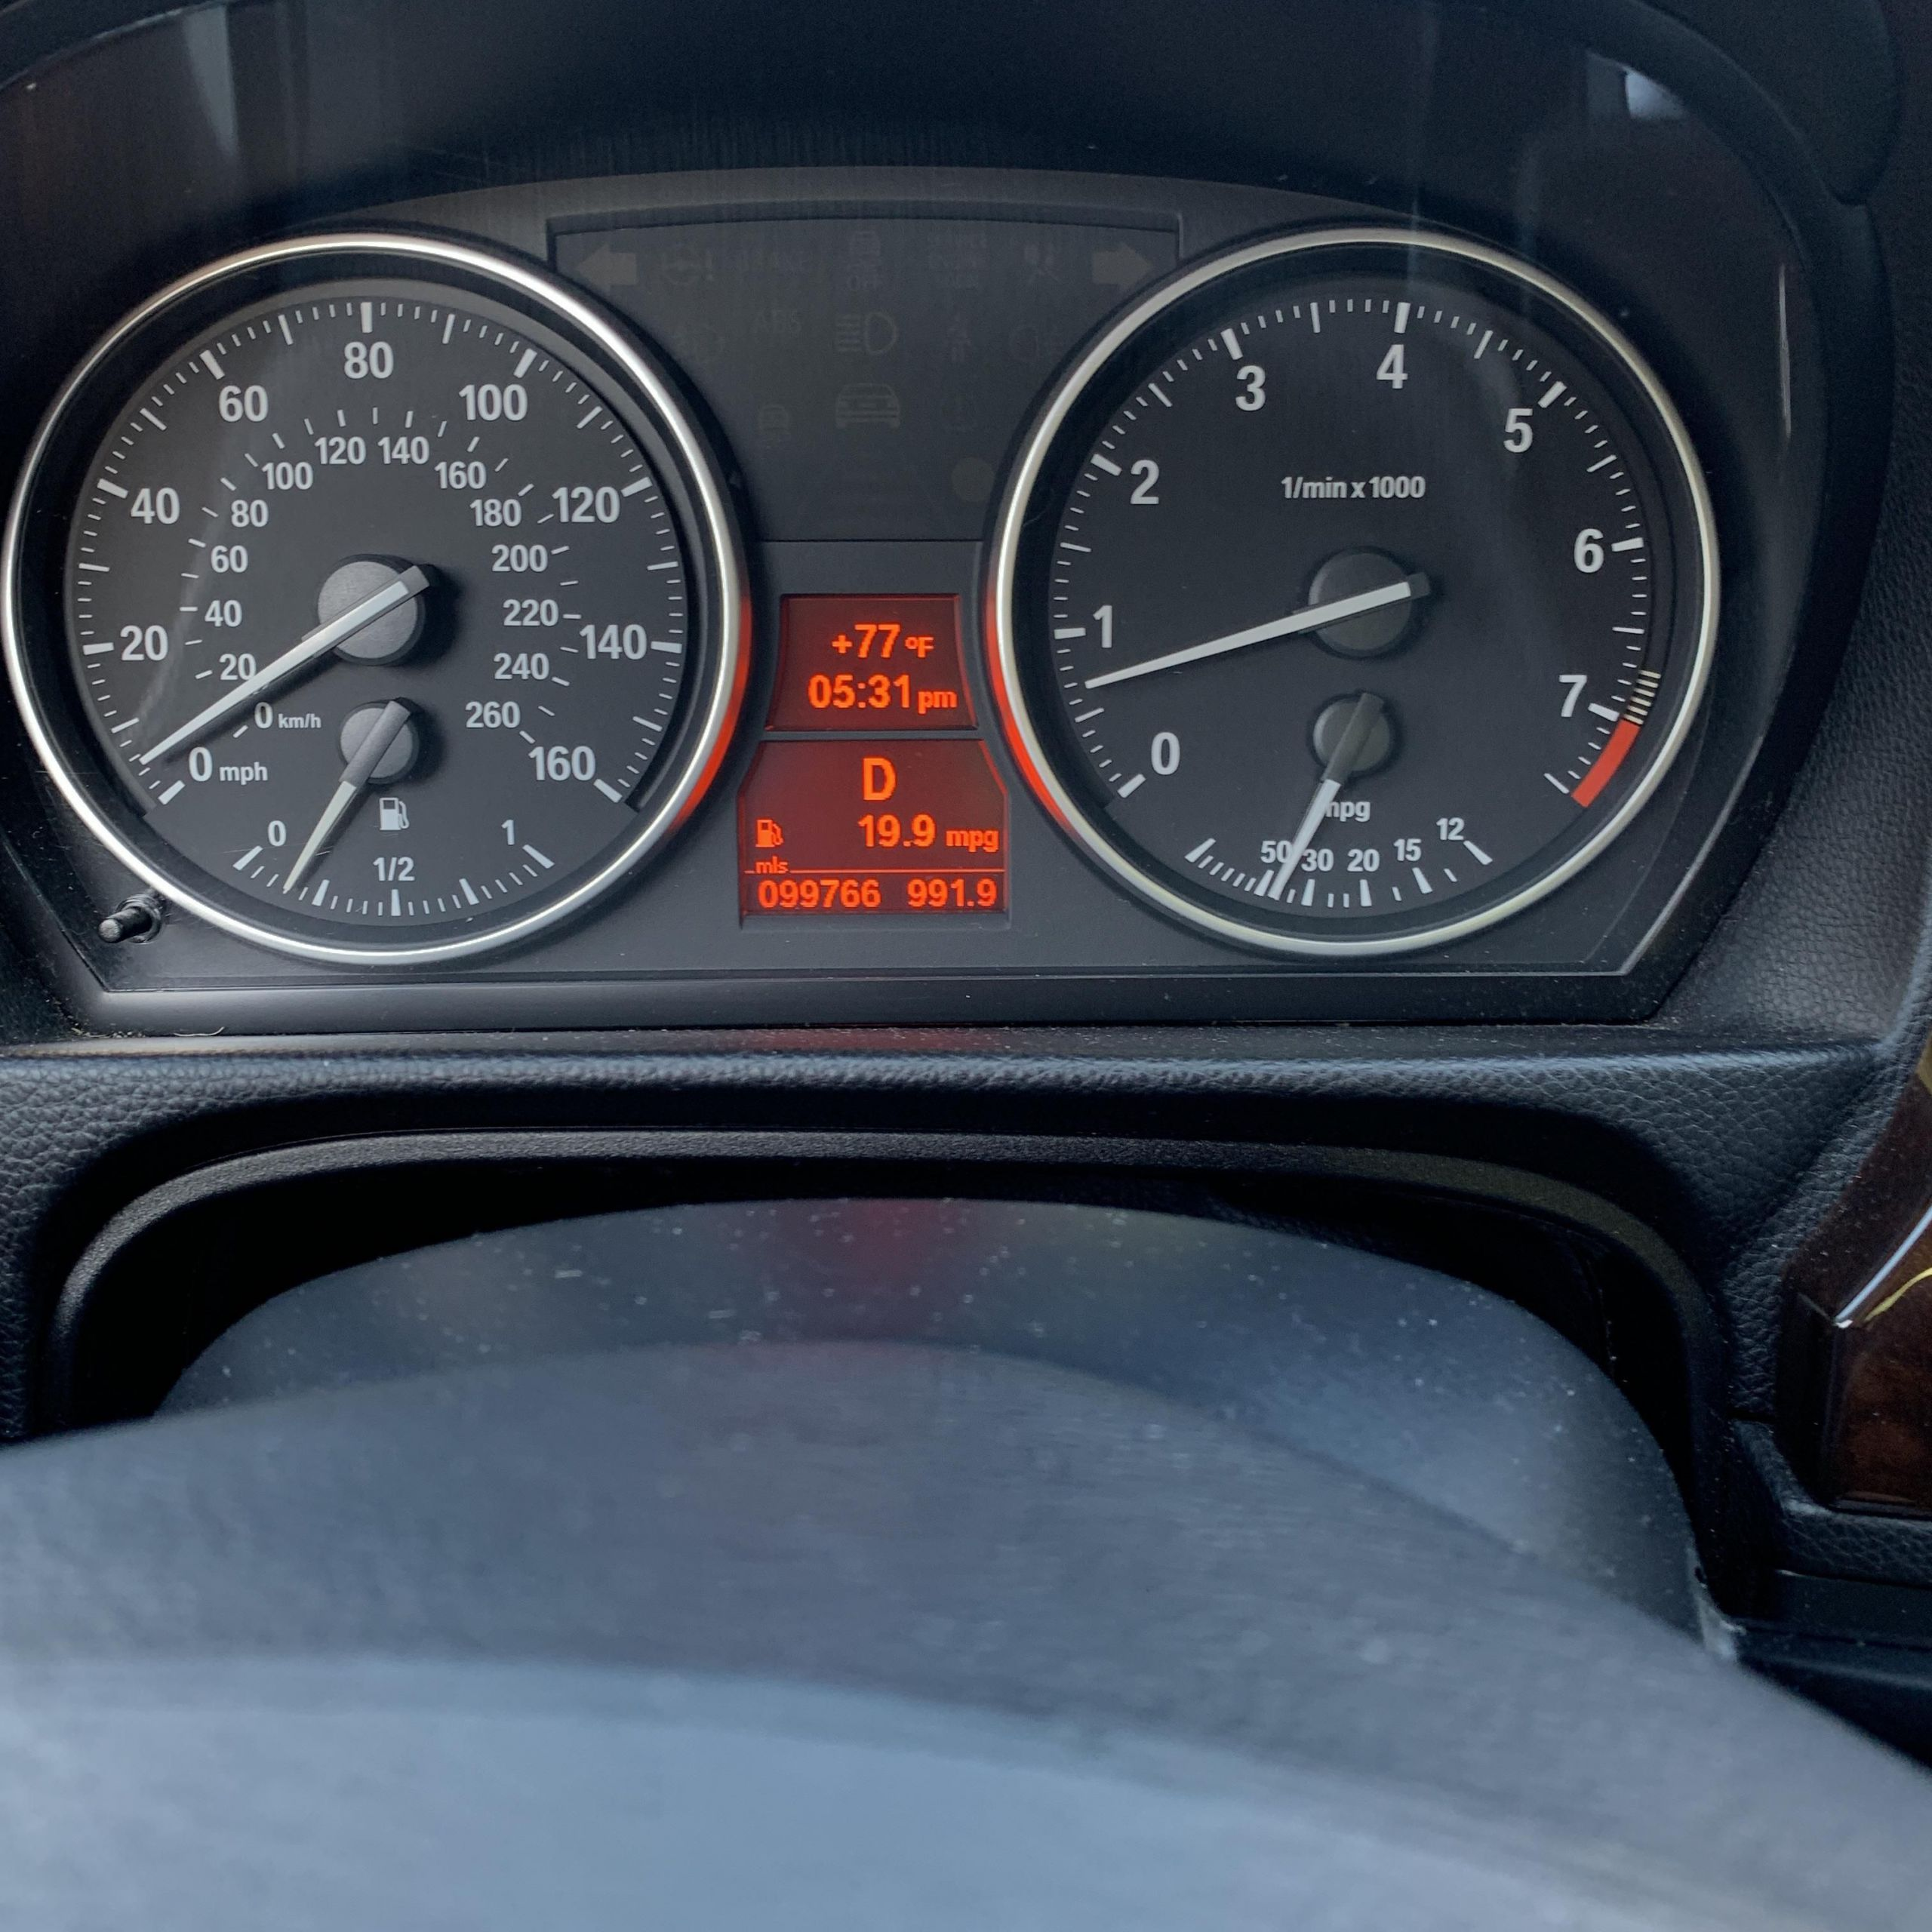 328i Best Of 2011 328i is This A Worrying Mpg Got New Spark Plugs and